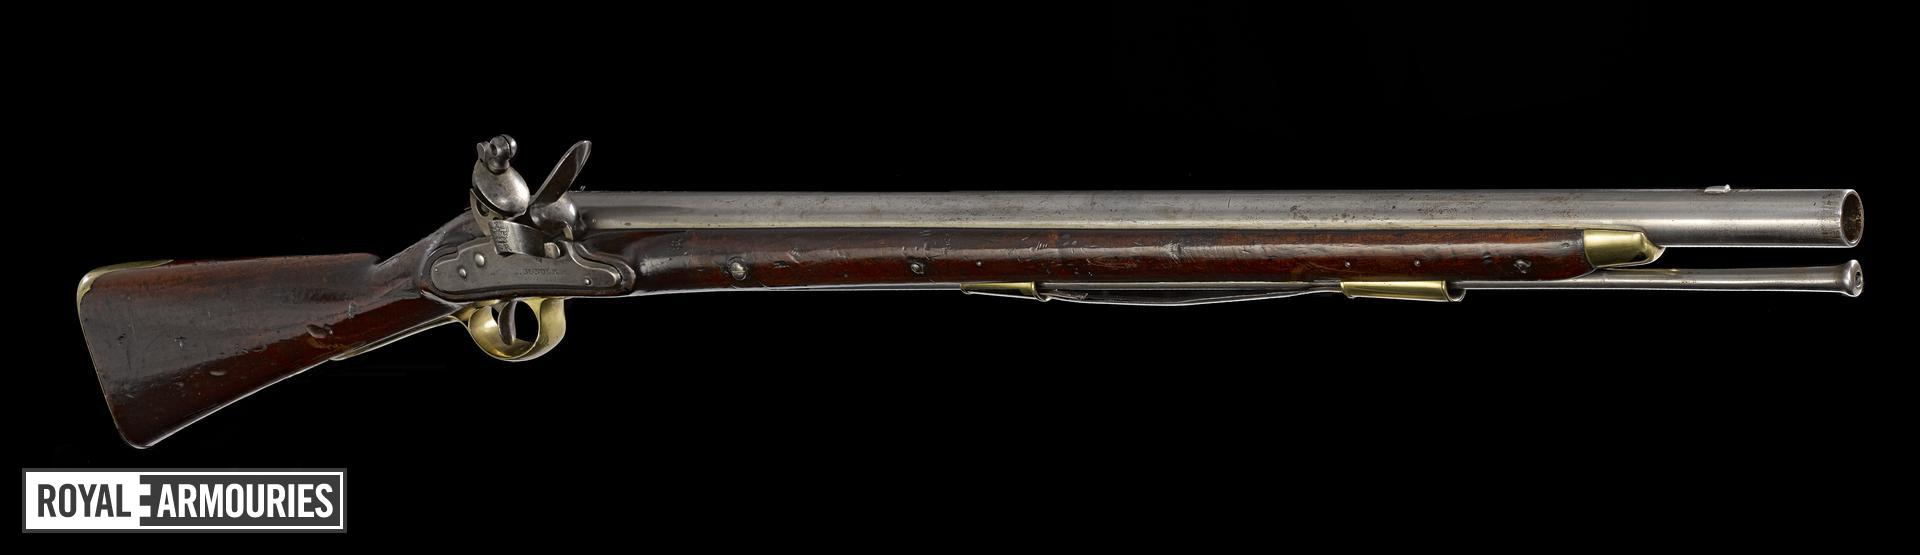 Heavy Dragoon model flintlock muzzle-loading military carbine, about 1800, Britain (XII.168)